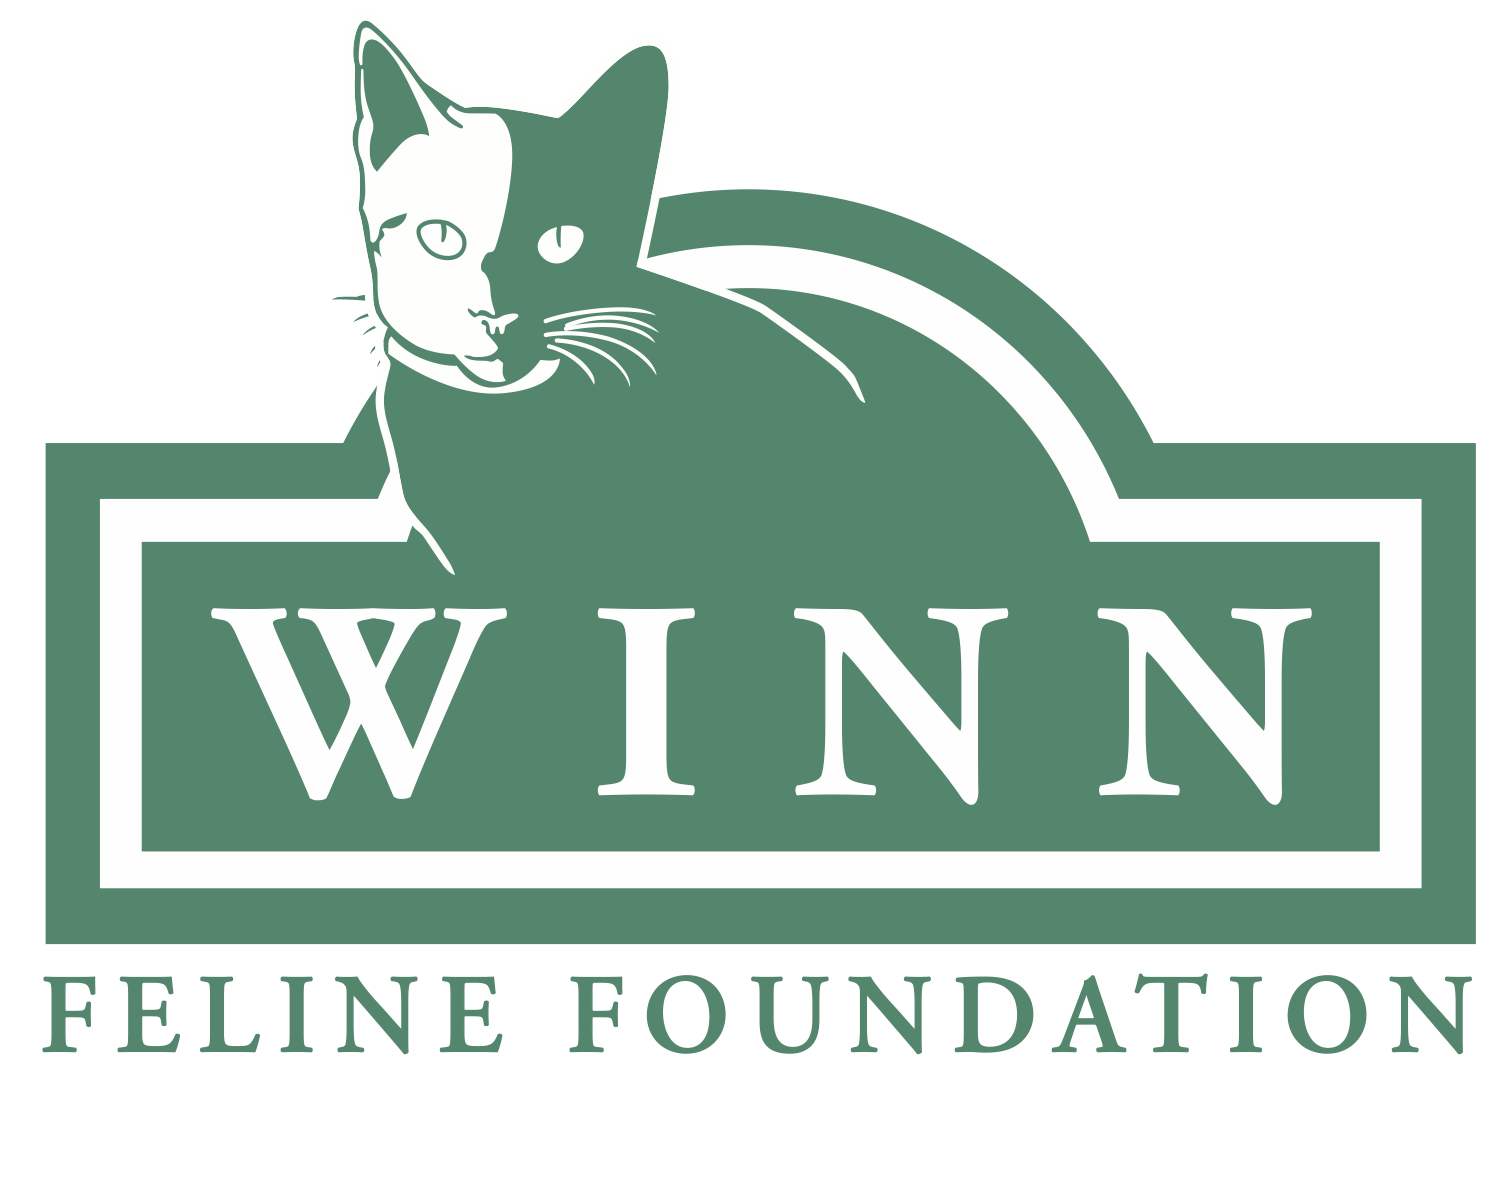 Winn feline foundation.png